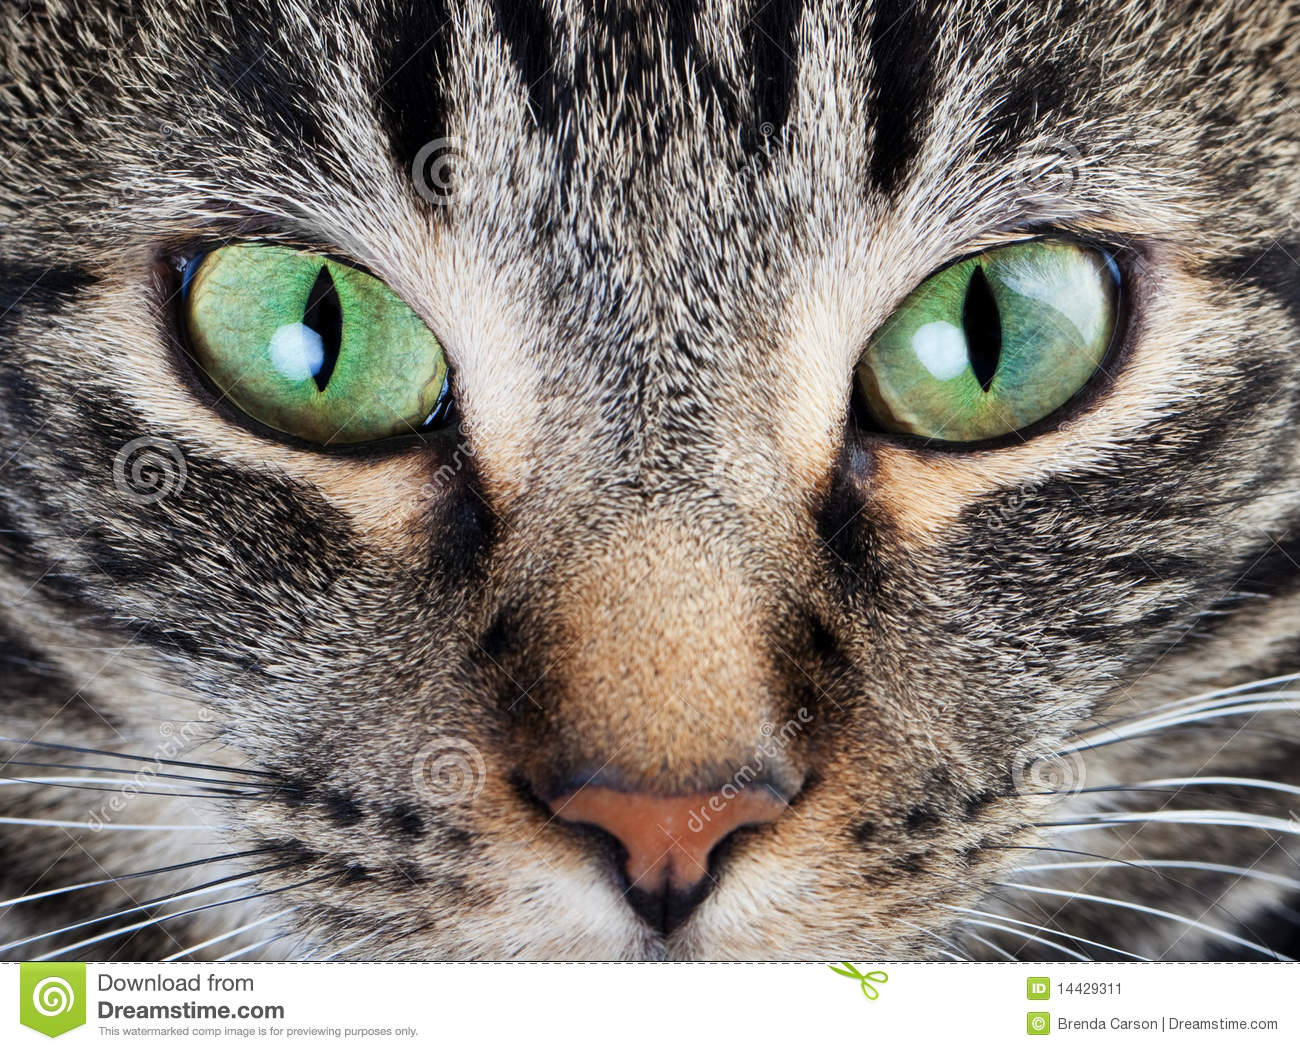 ... shot of a young tabby cat's face. Focus on his gorgeous green eyes